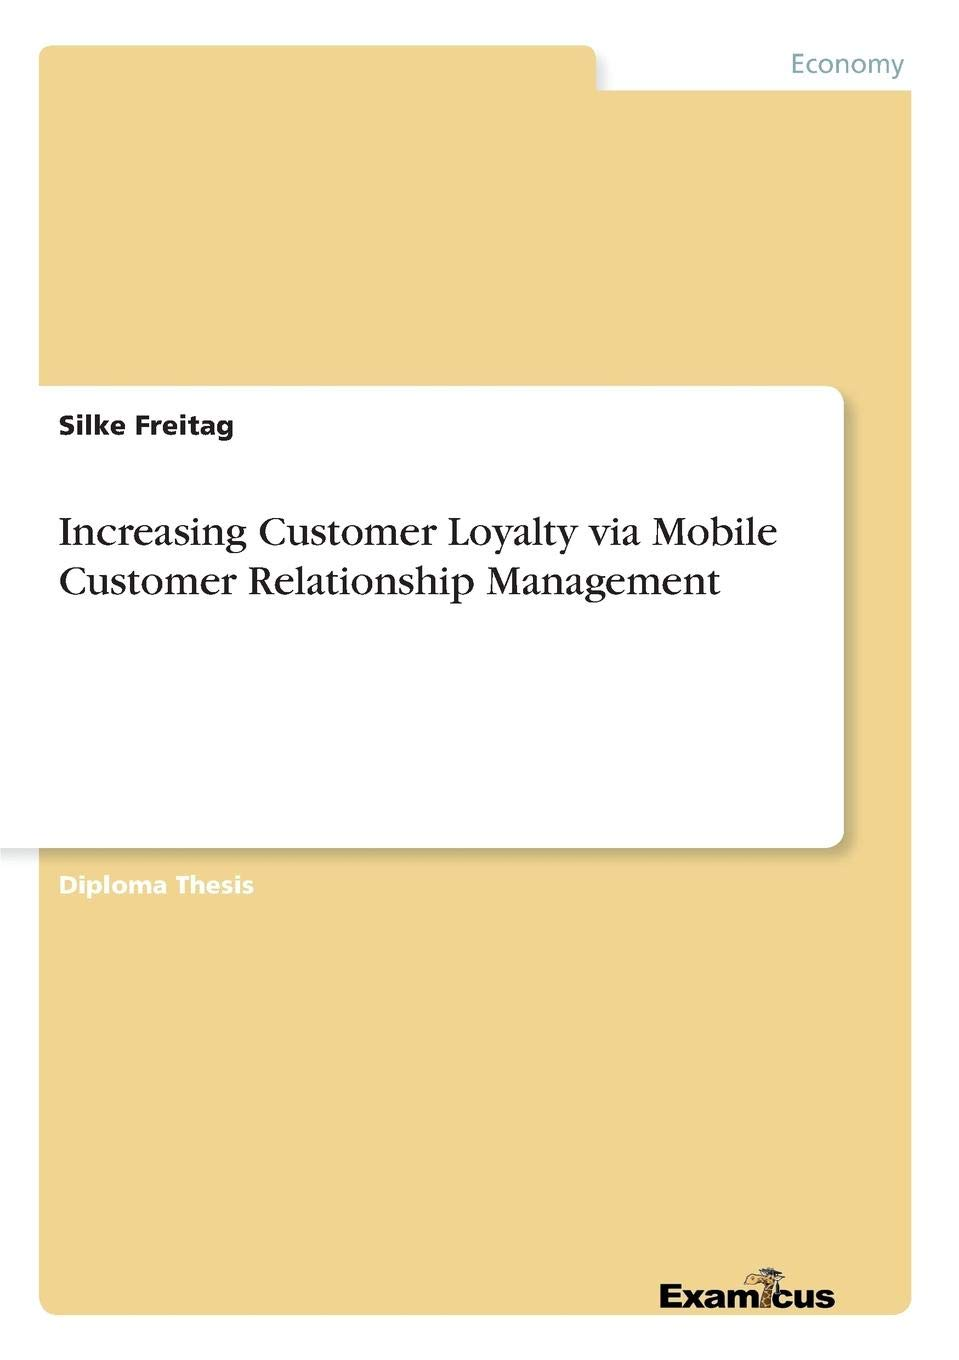 thesis on the effect of customer relationship management on customer retention